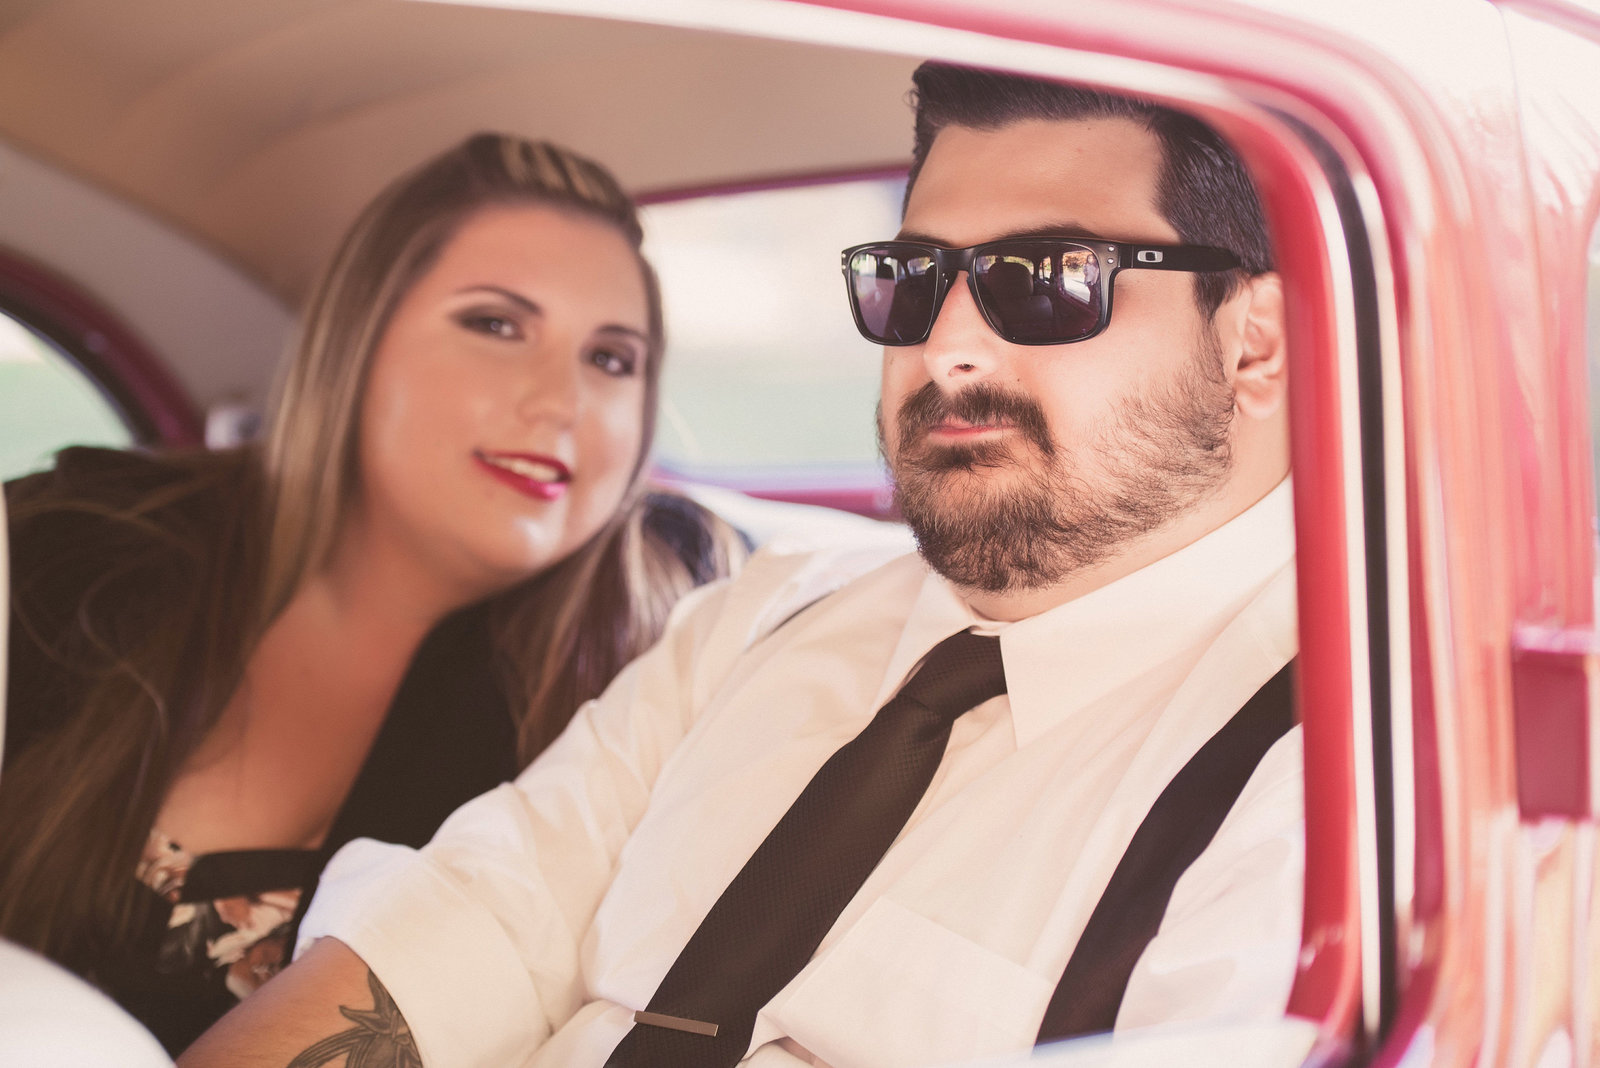 Retro_Pinup_Car_engagement_session_Nj023